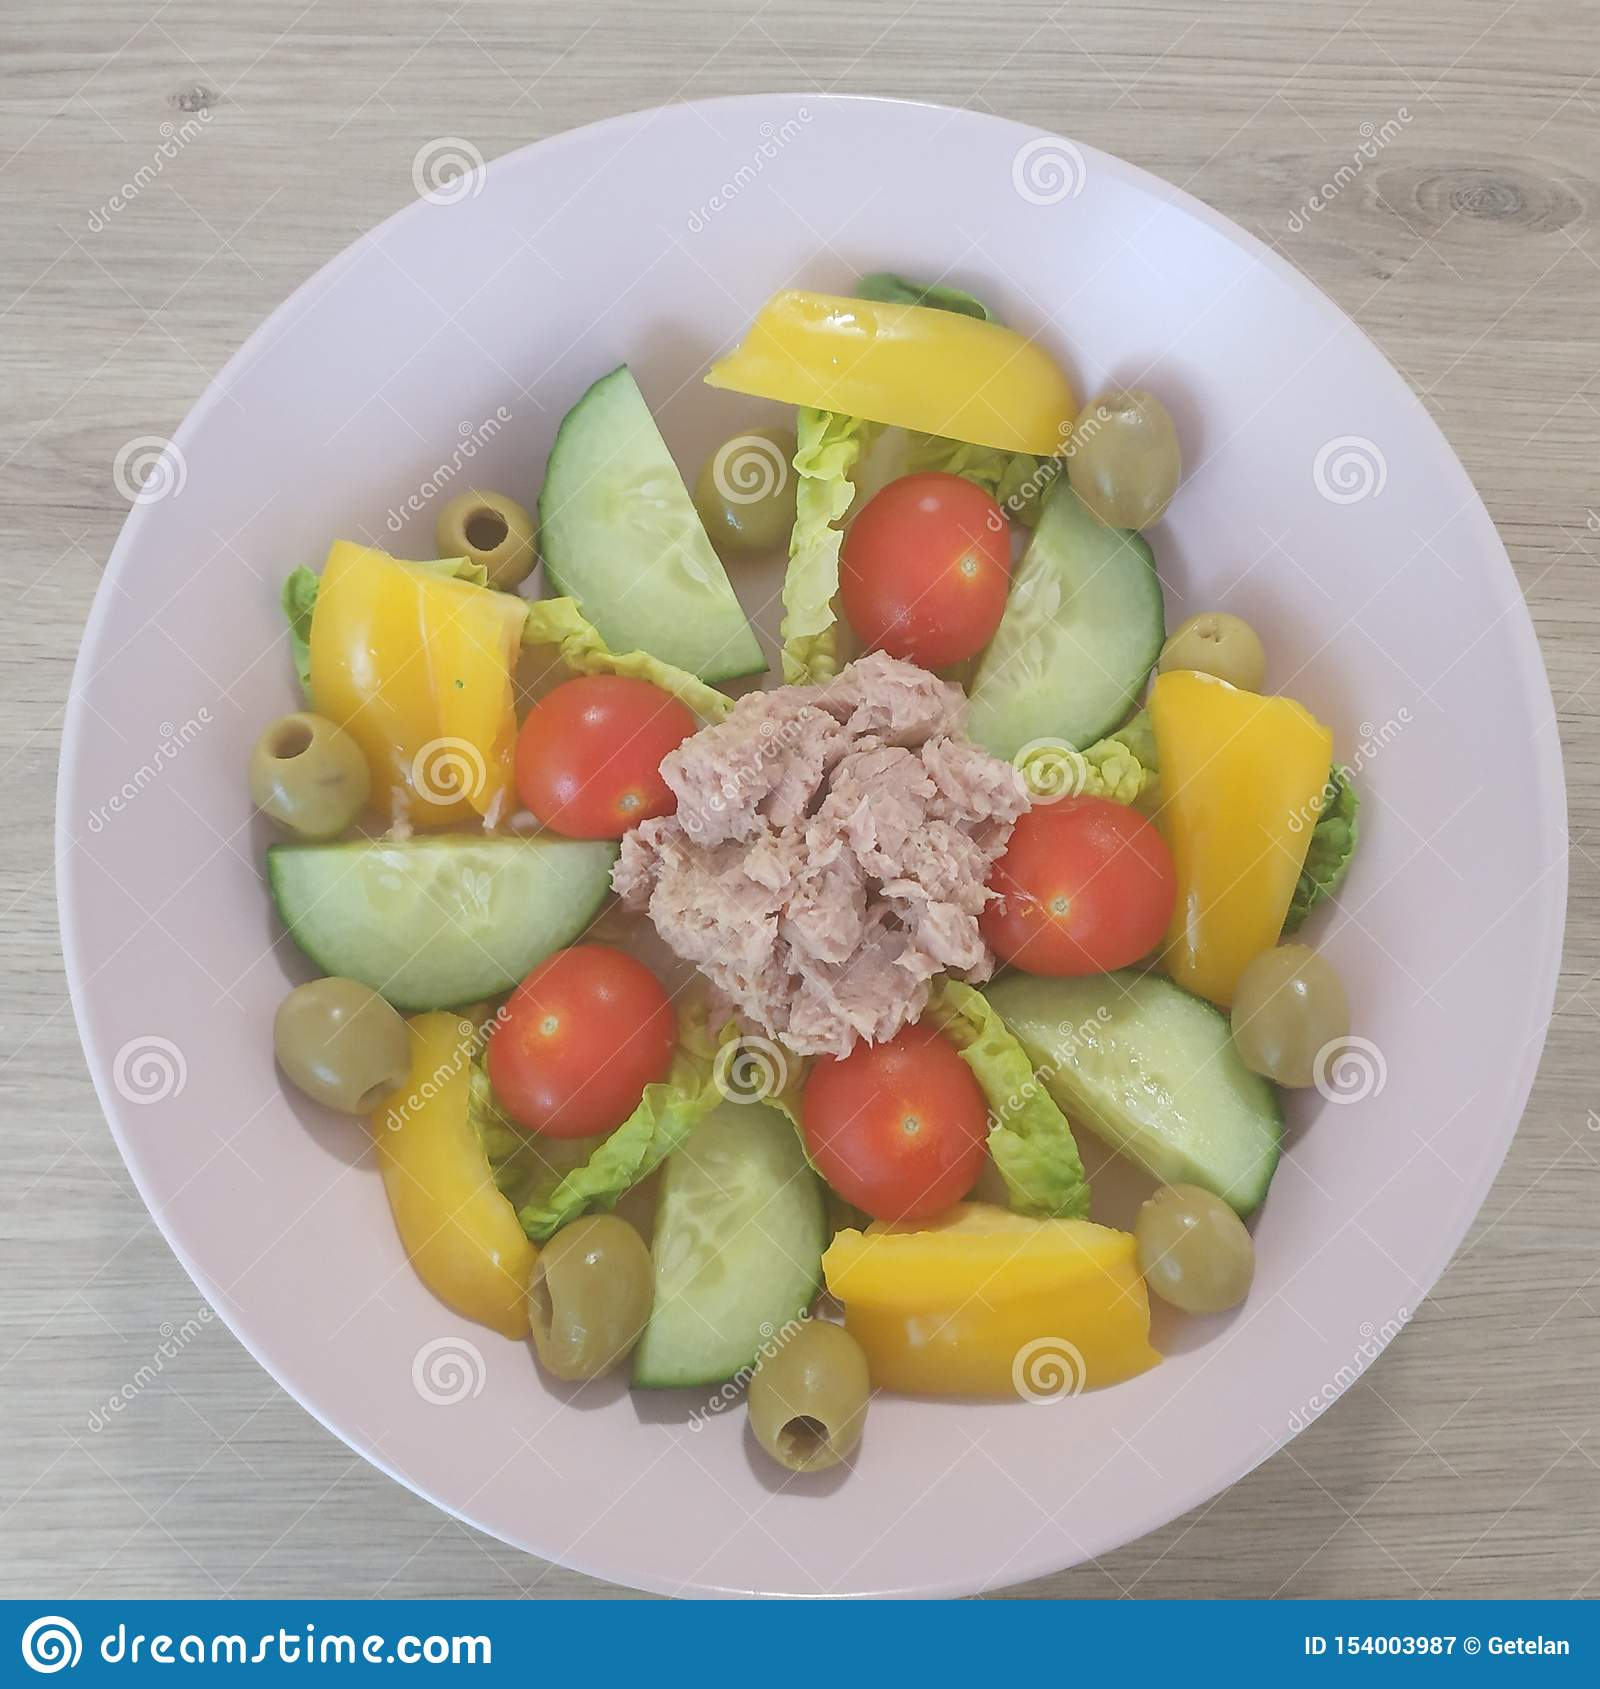 Ketogenic meal, tuna salad with tomatoes, bell pepper, cucumber, olives. Keto food for weight loss. Healthy diet dinner